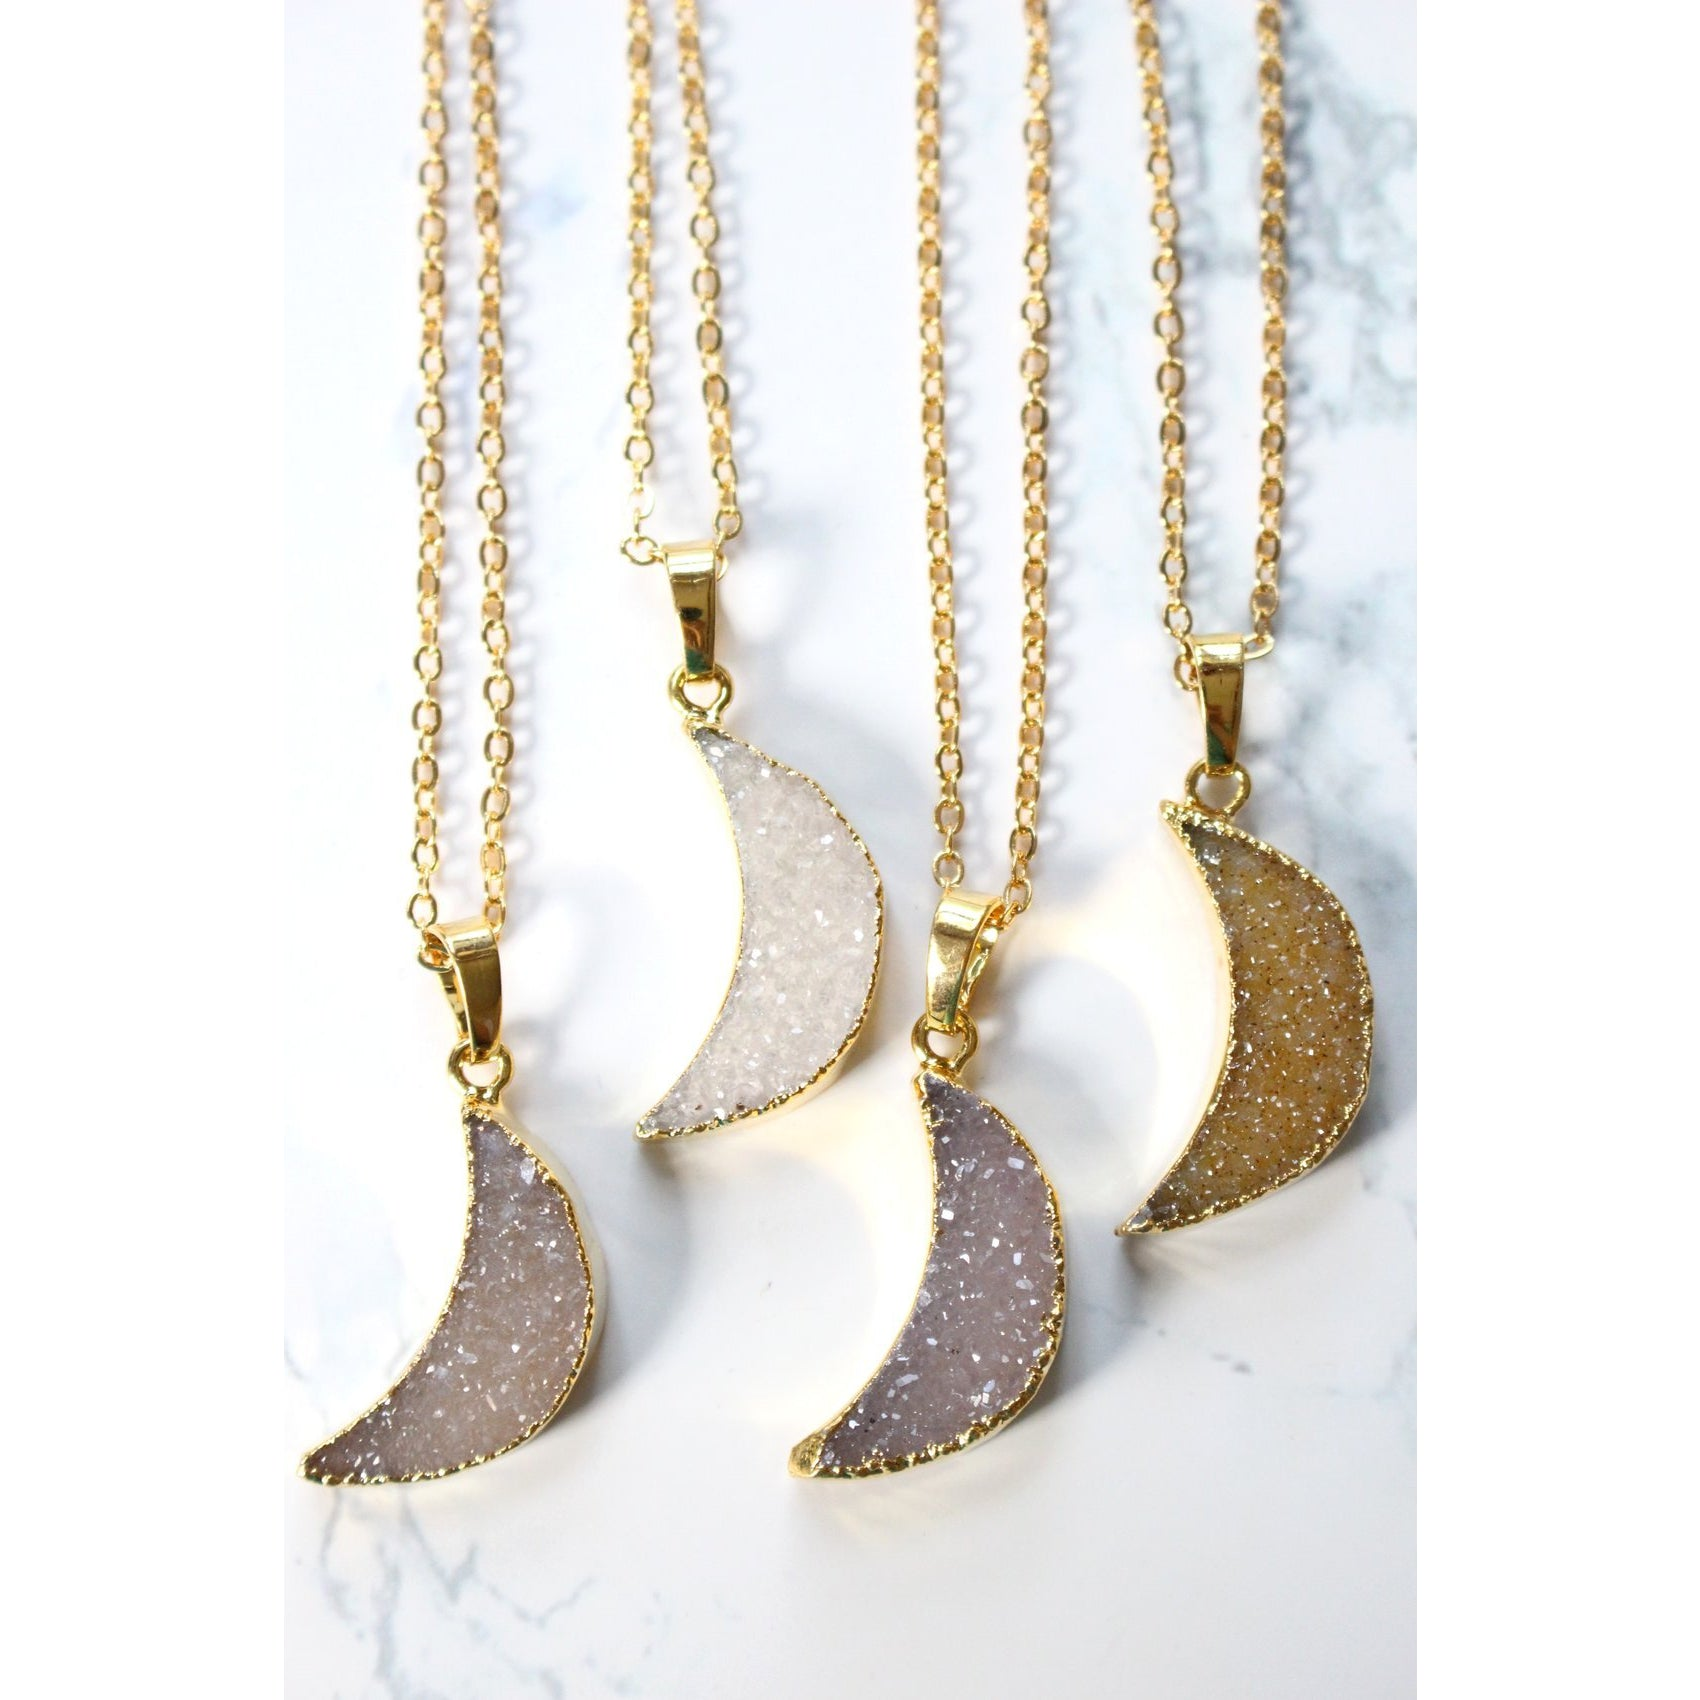 24K Gold Natural Gray Quartz Crescent Moon Necklace